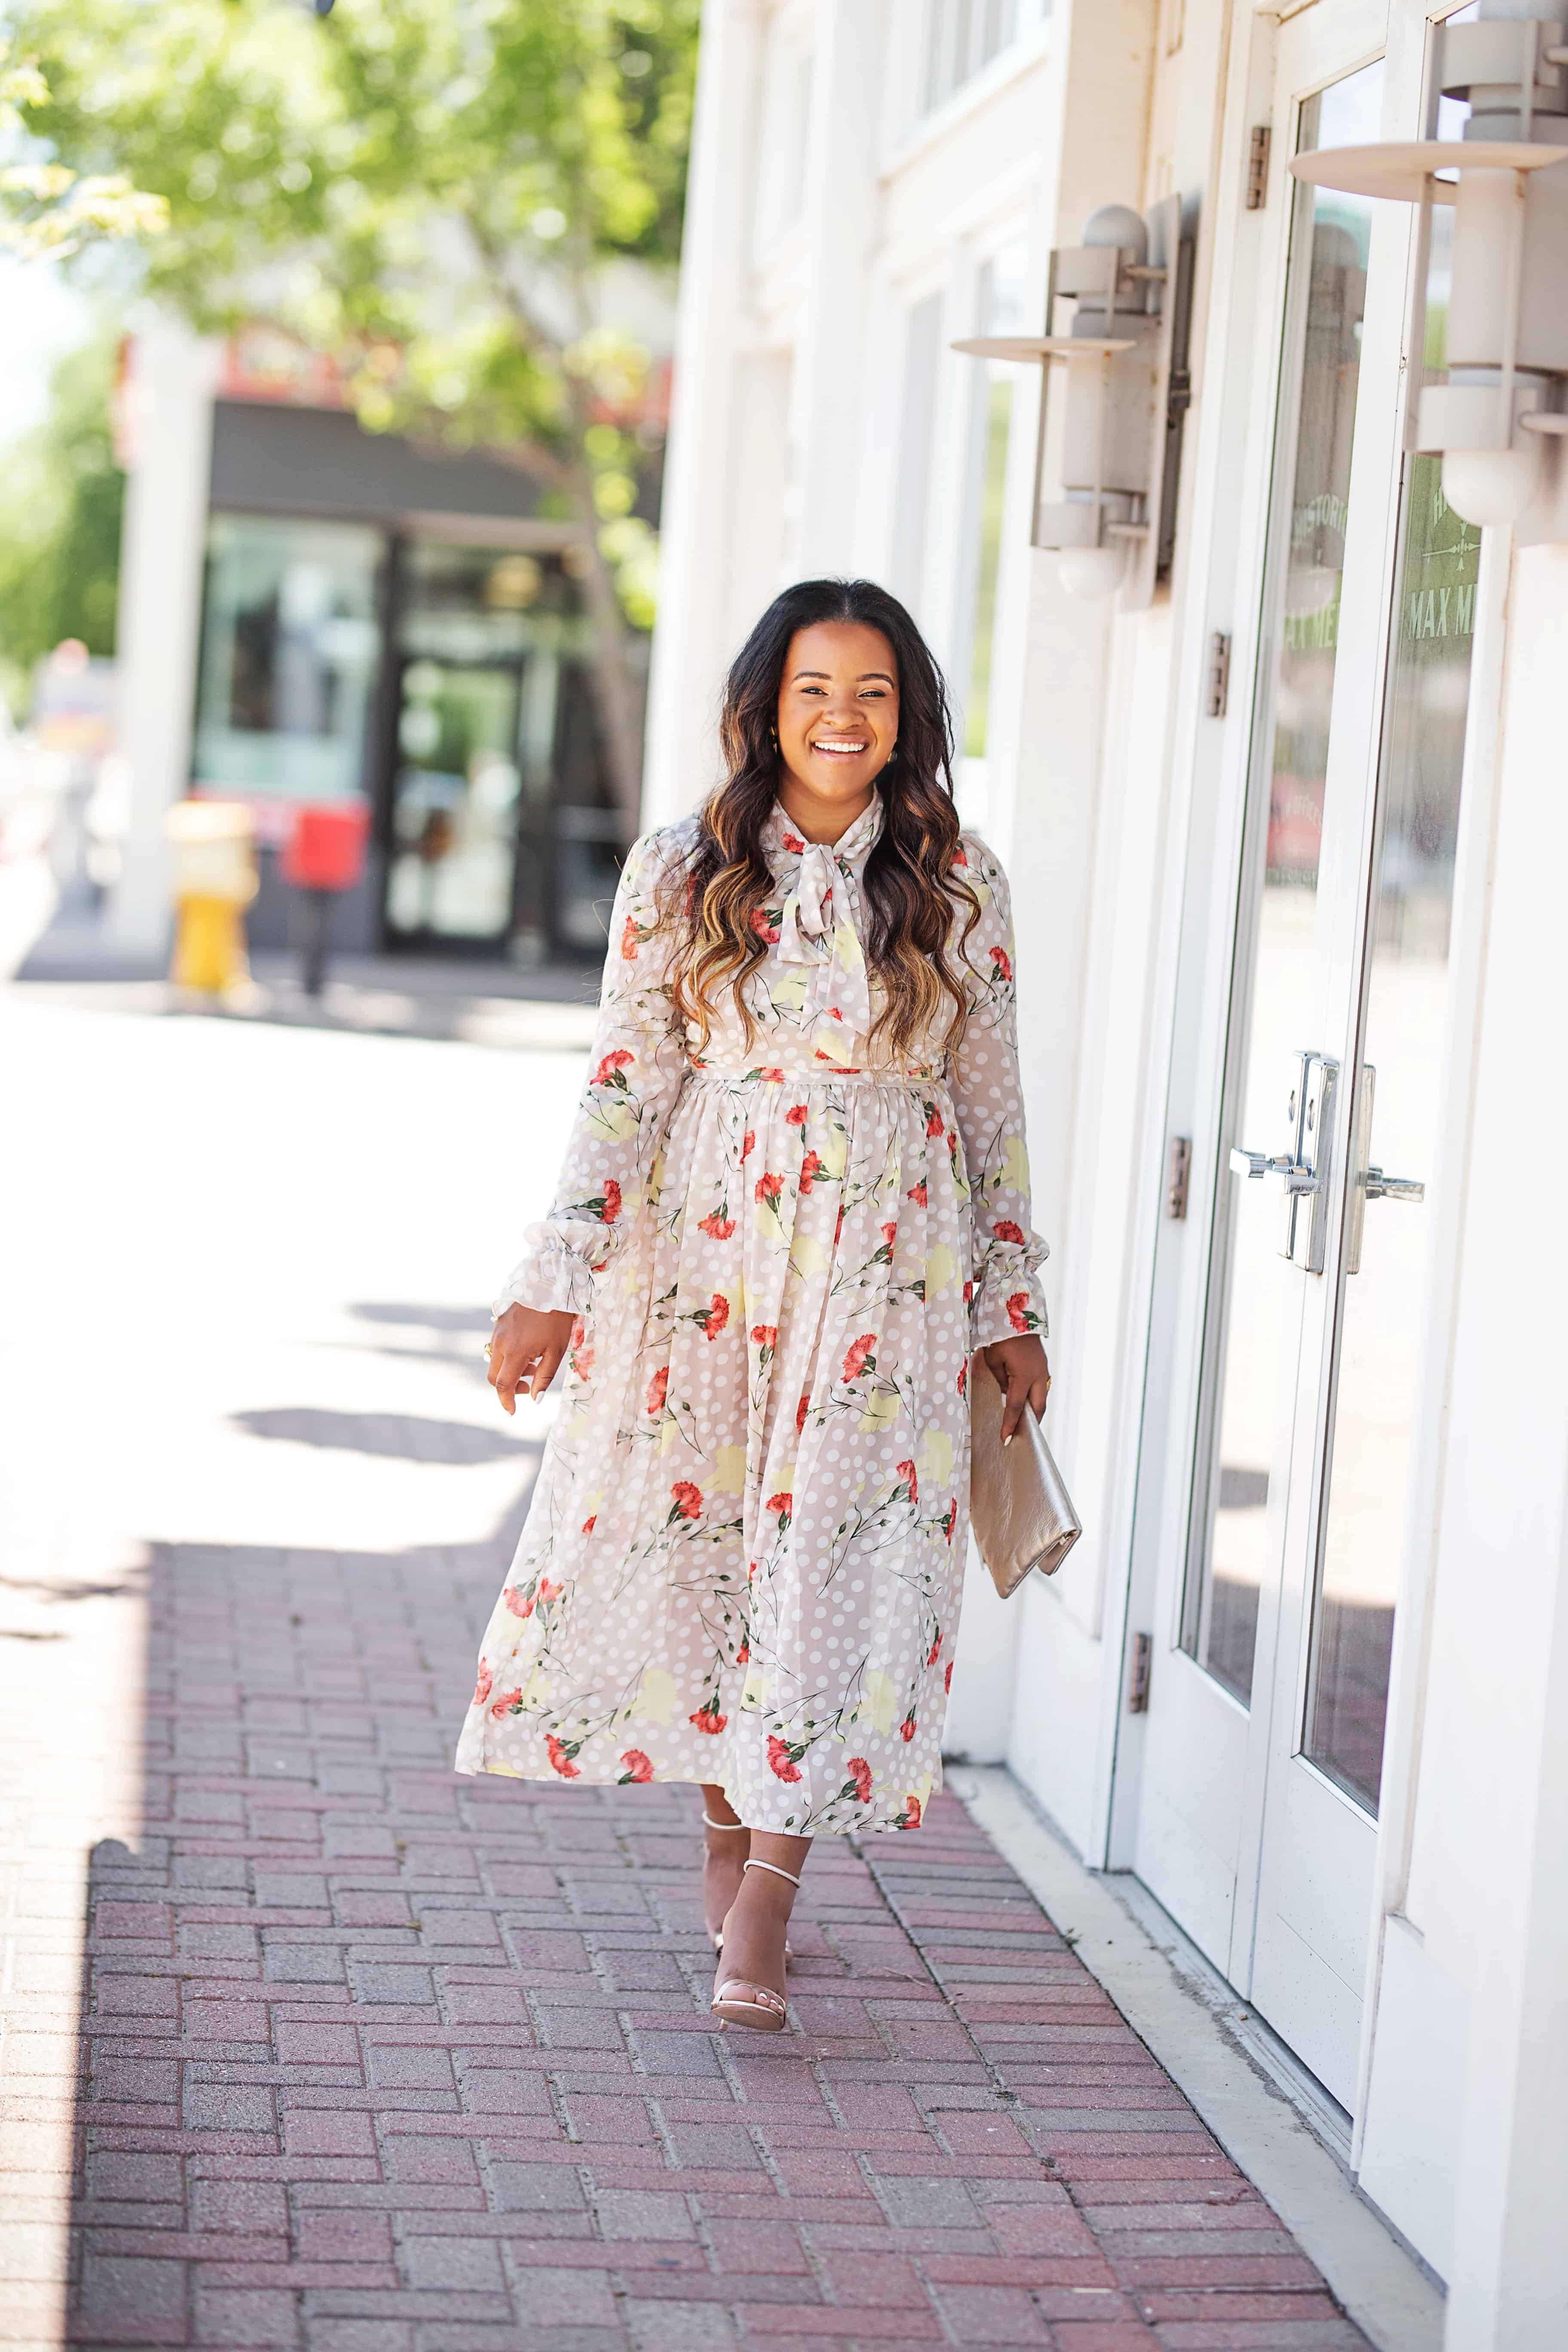 20 Cute Wedding Guest Dresses Under $50 featured by top US fashion blog, Glamorous Versatility: image of a woman wearing a floral wedding guest dress from Pretty Little Thing